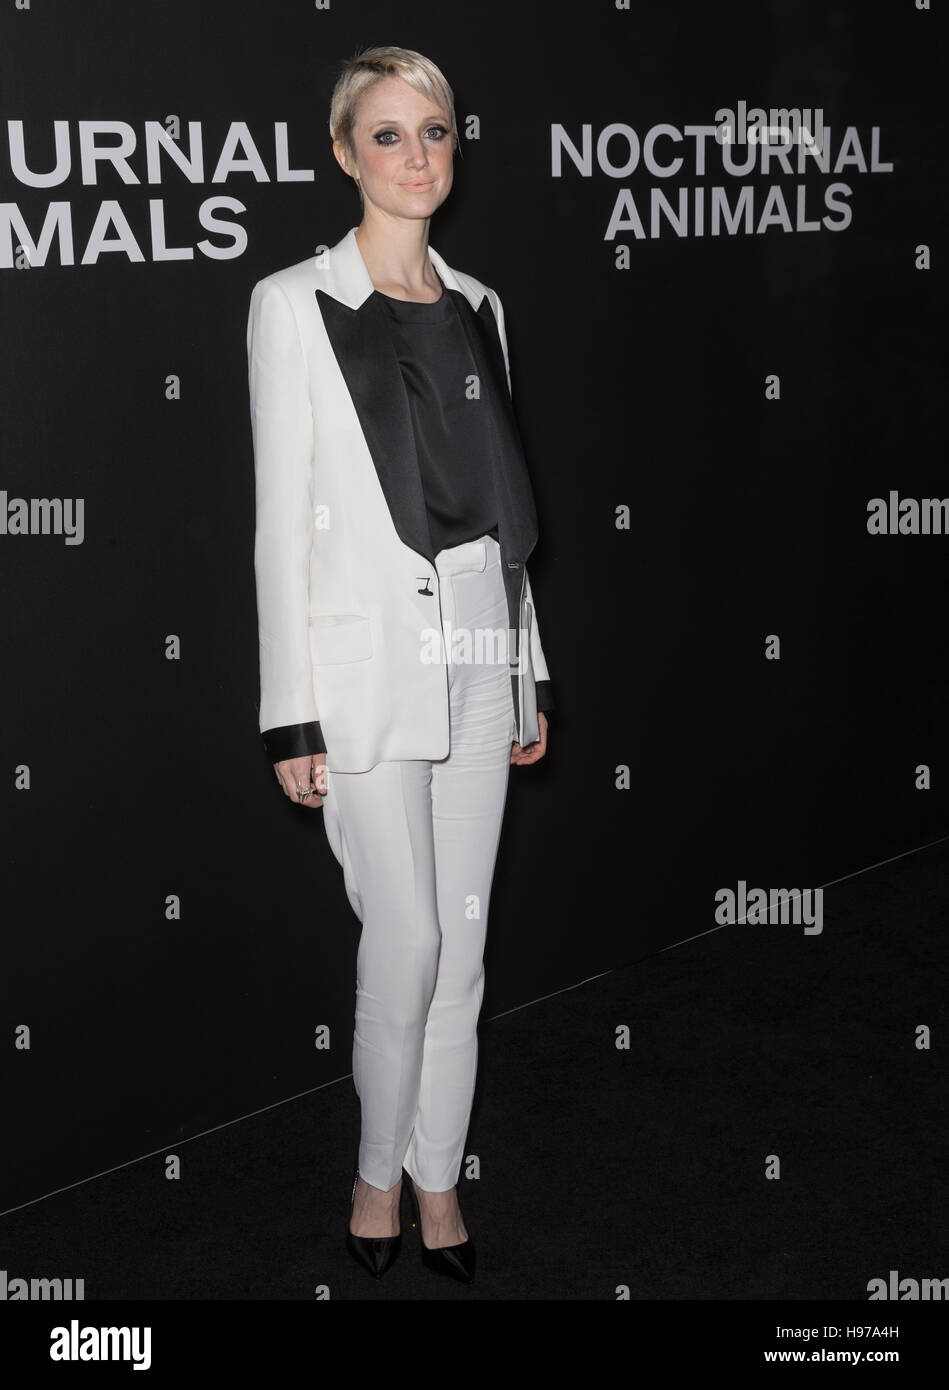 New York City, USA - November 17, 2016: Actress Andrea Riseborough attends the 'Nocturnal Animals' New York - Stock Image